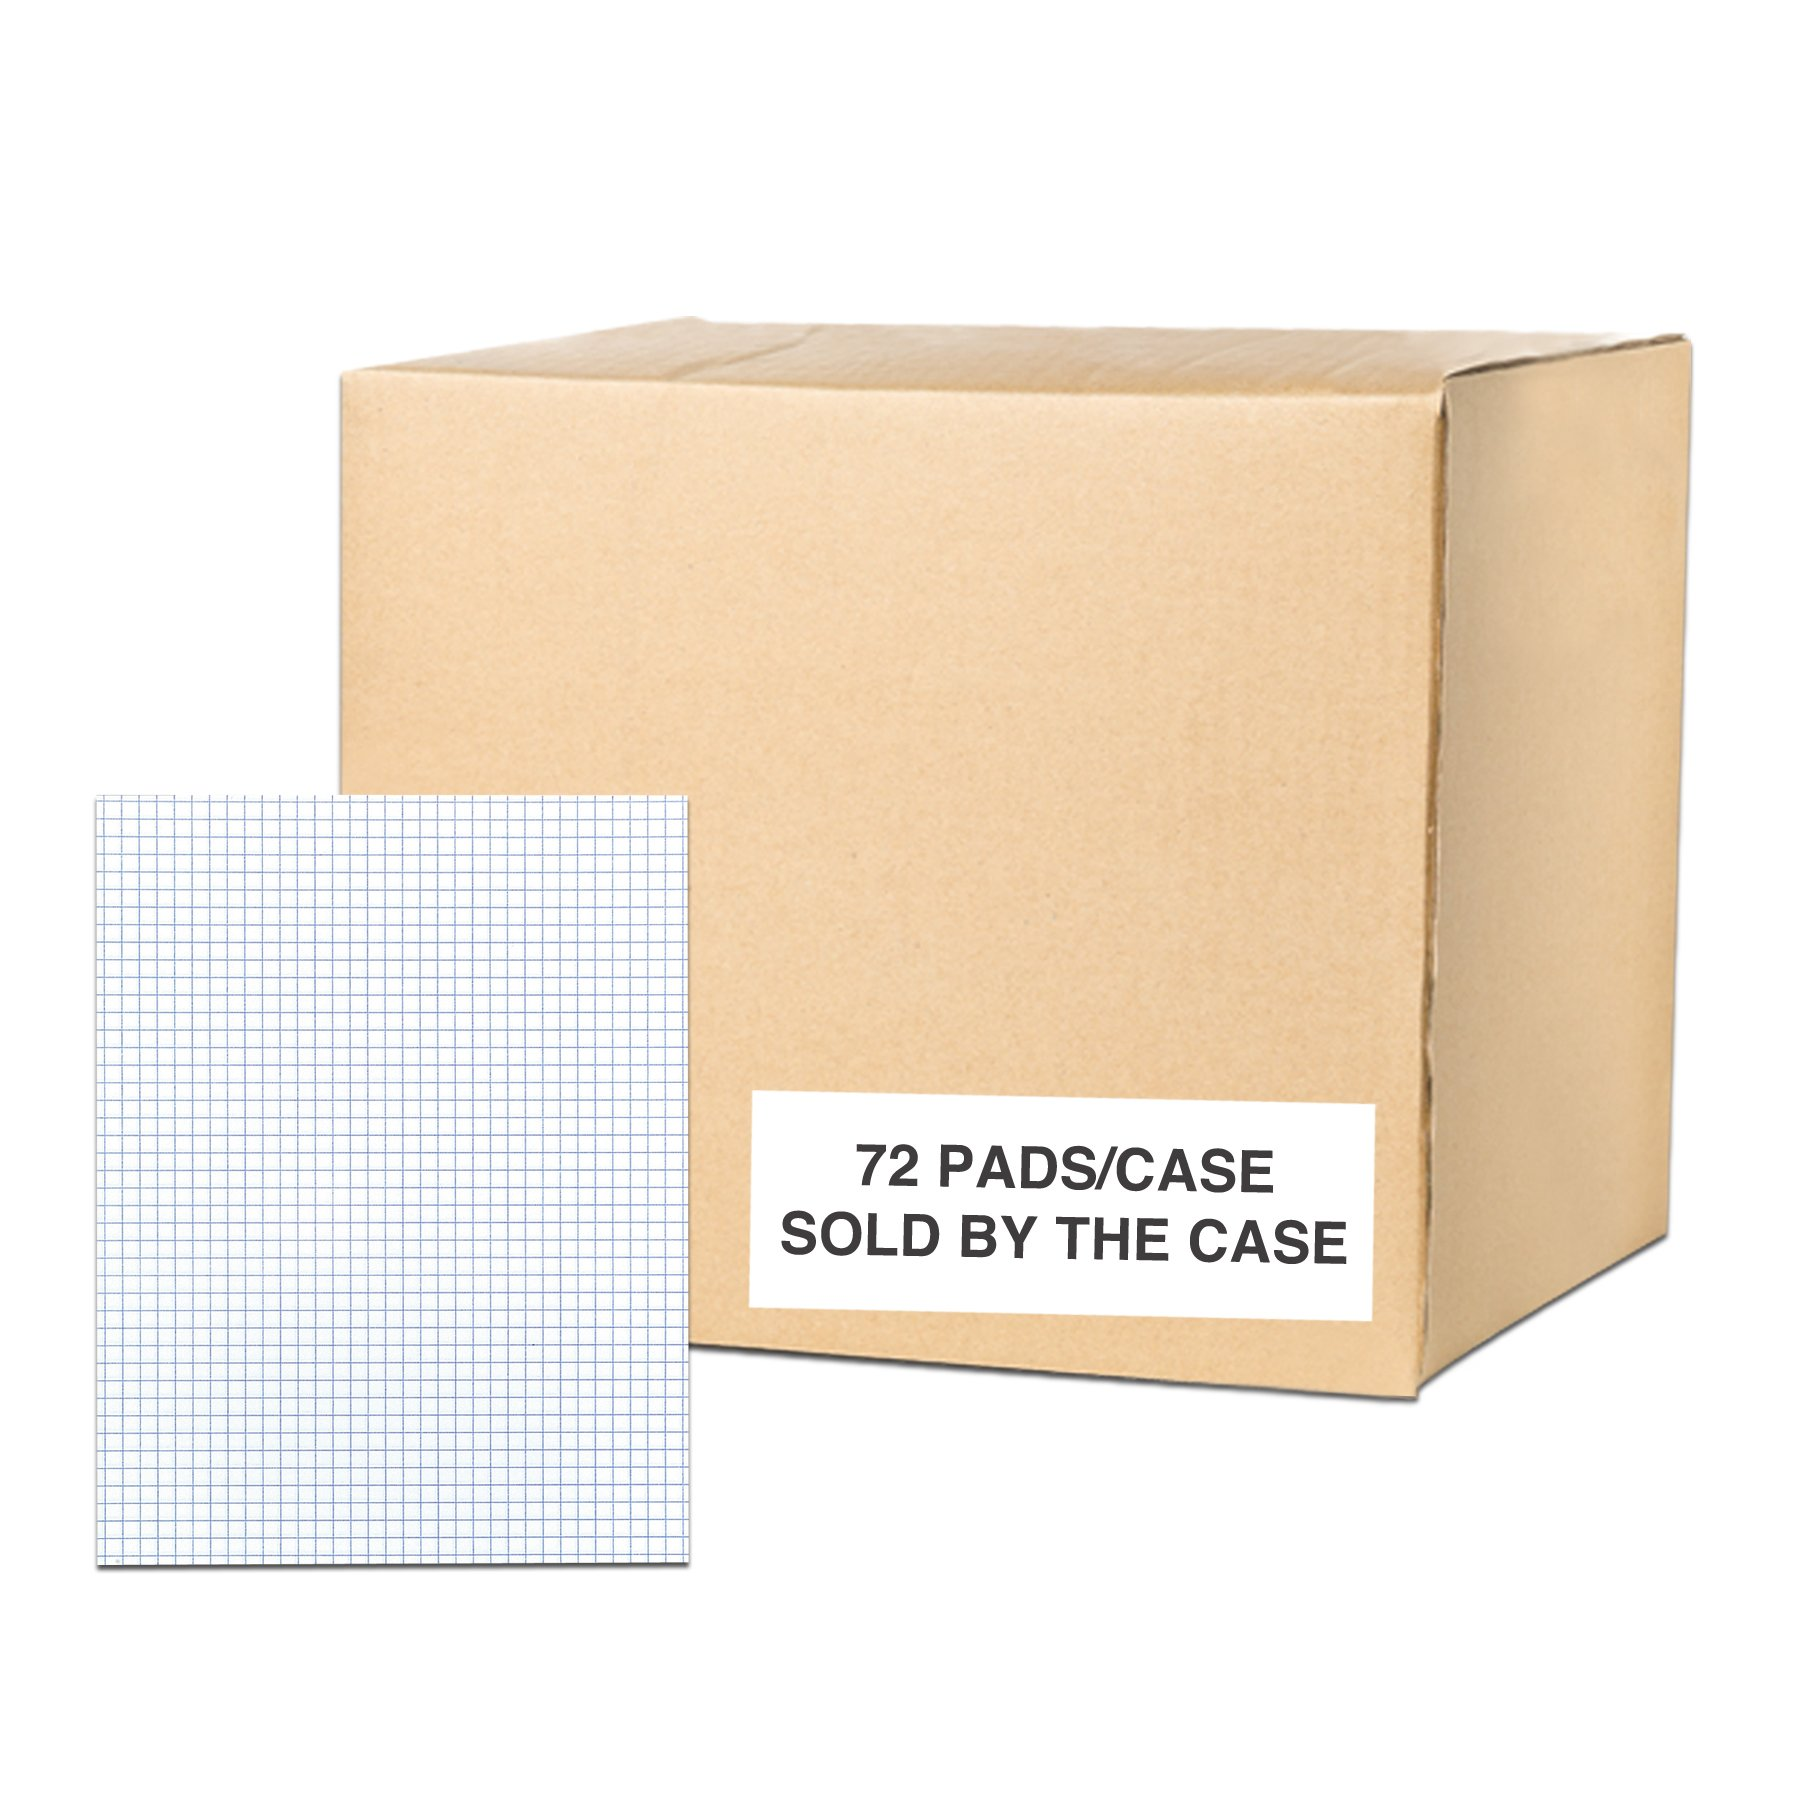 Case of 72 Gummed Pads, 8.5''x11'', 50 sheets 15# White Paper Per Pad, 12 Pads Per pack, 3-Hole Punched, glued, 4x4 graph Ruled